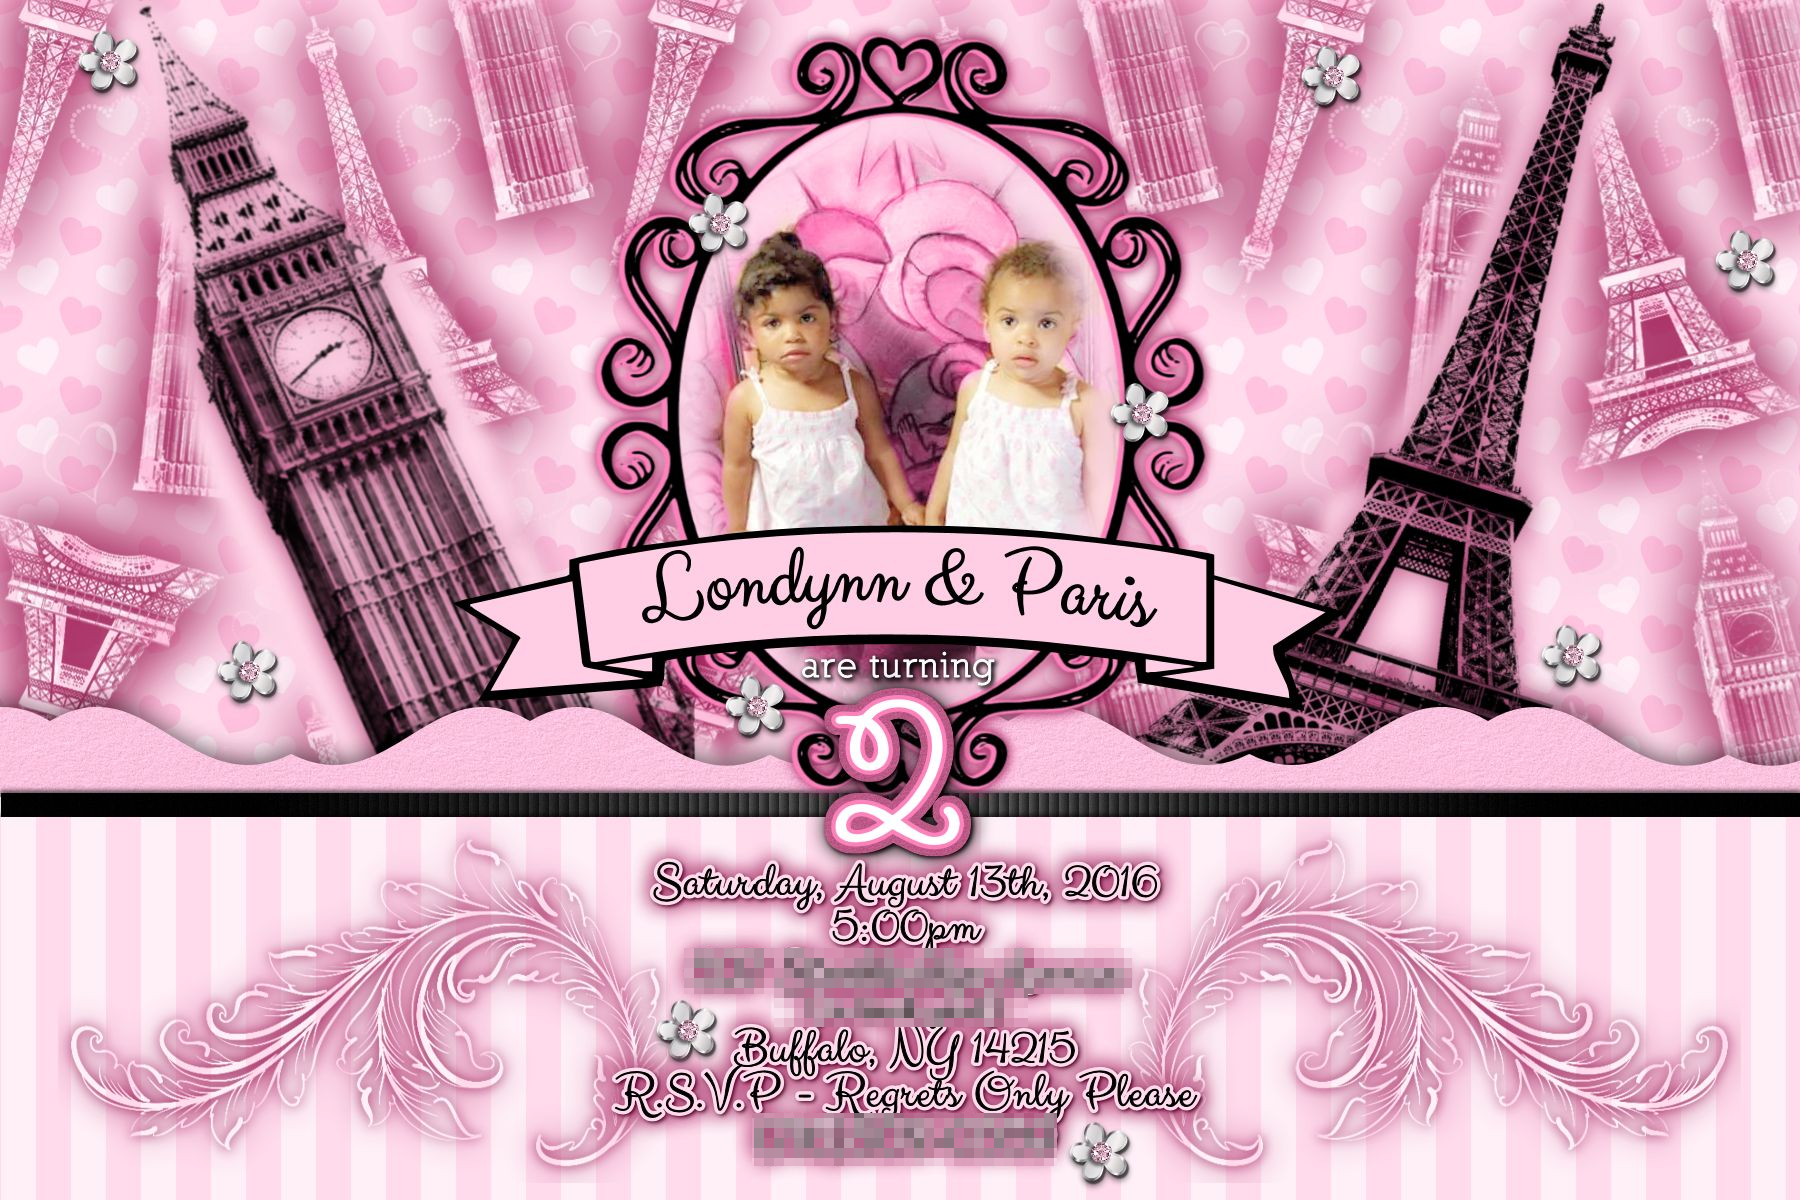 CUSTOM BIRTHDAY THEMES!!! This invitation was designed by #RMBArtandDesign  #invitation #London #paris #birthdayparty